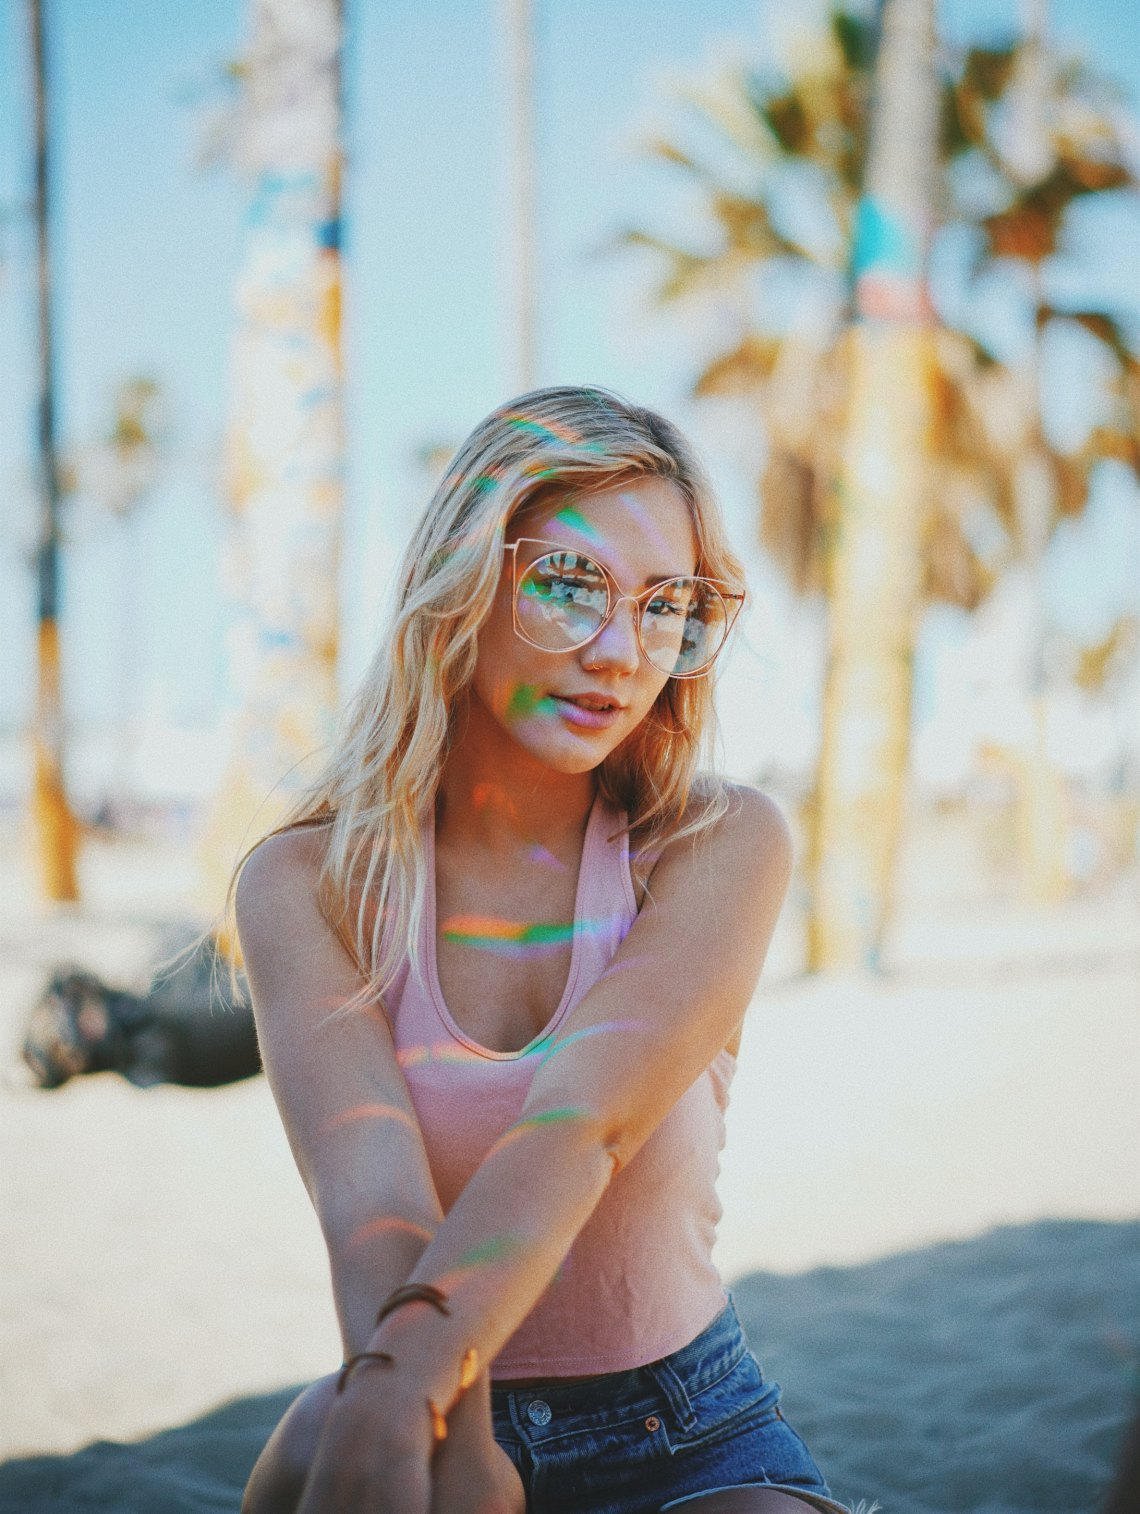 girl in glasses with rainbows on her